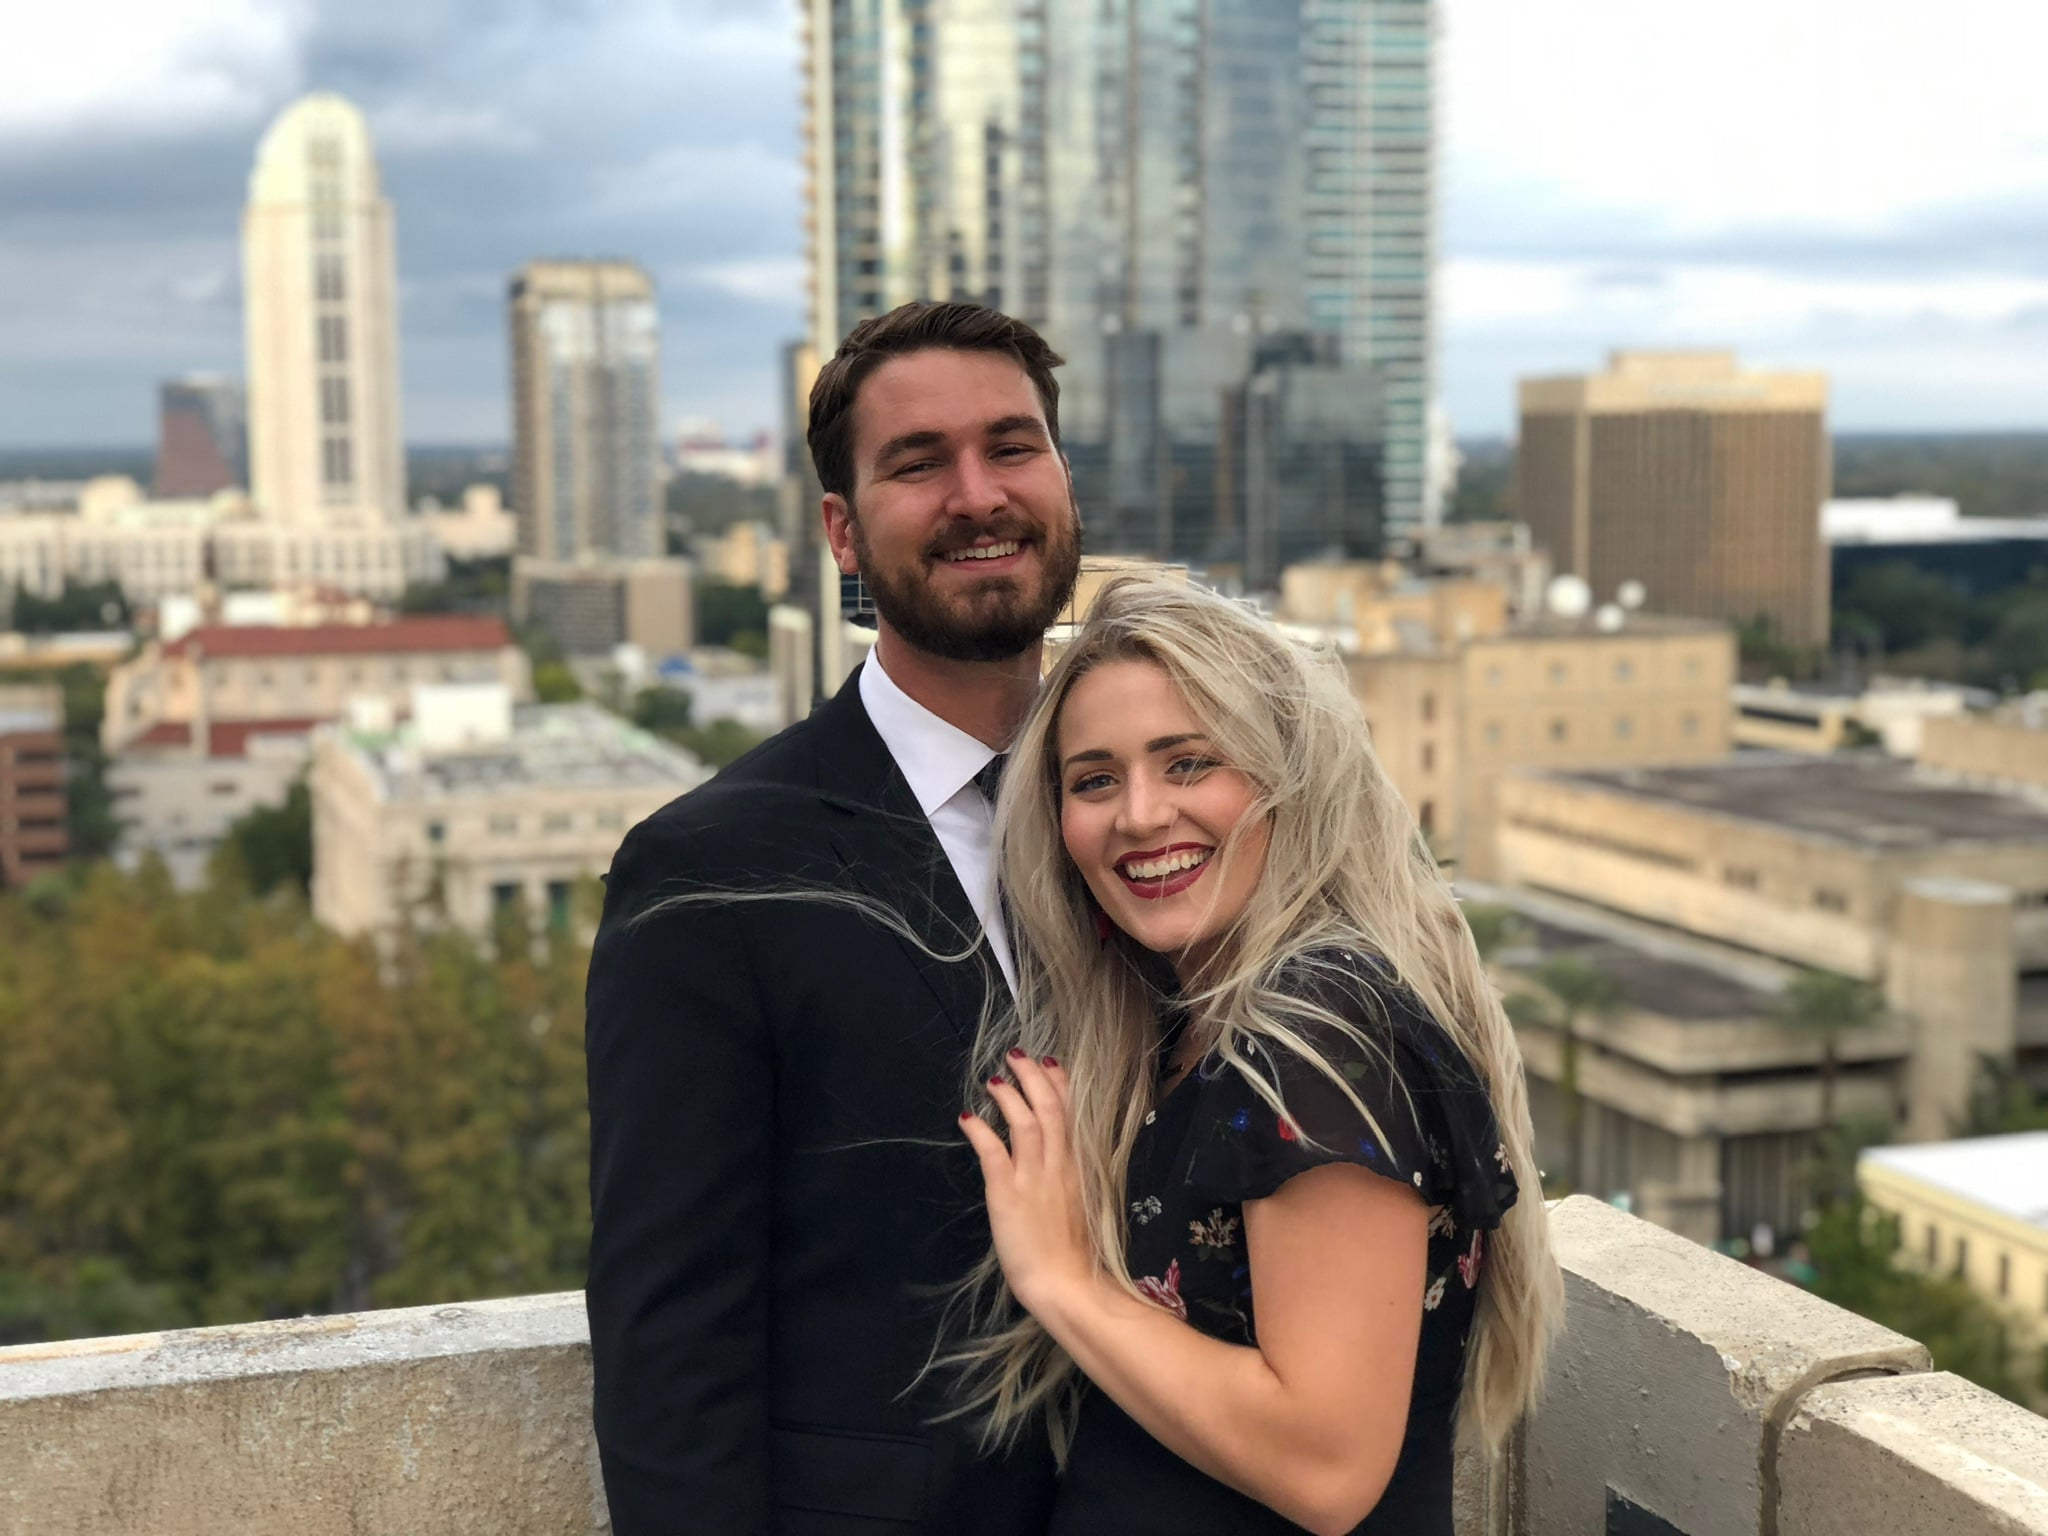 blonde haired woman stand against chest of man both dressed formally and smiling for a picture while on a rooftop downtown and building behind them